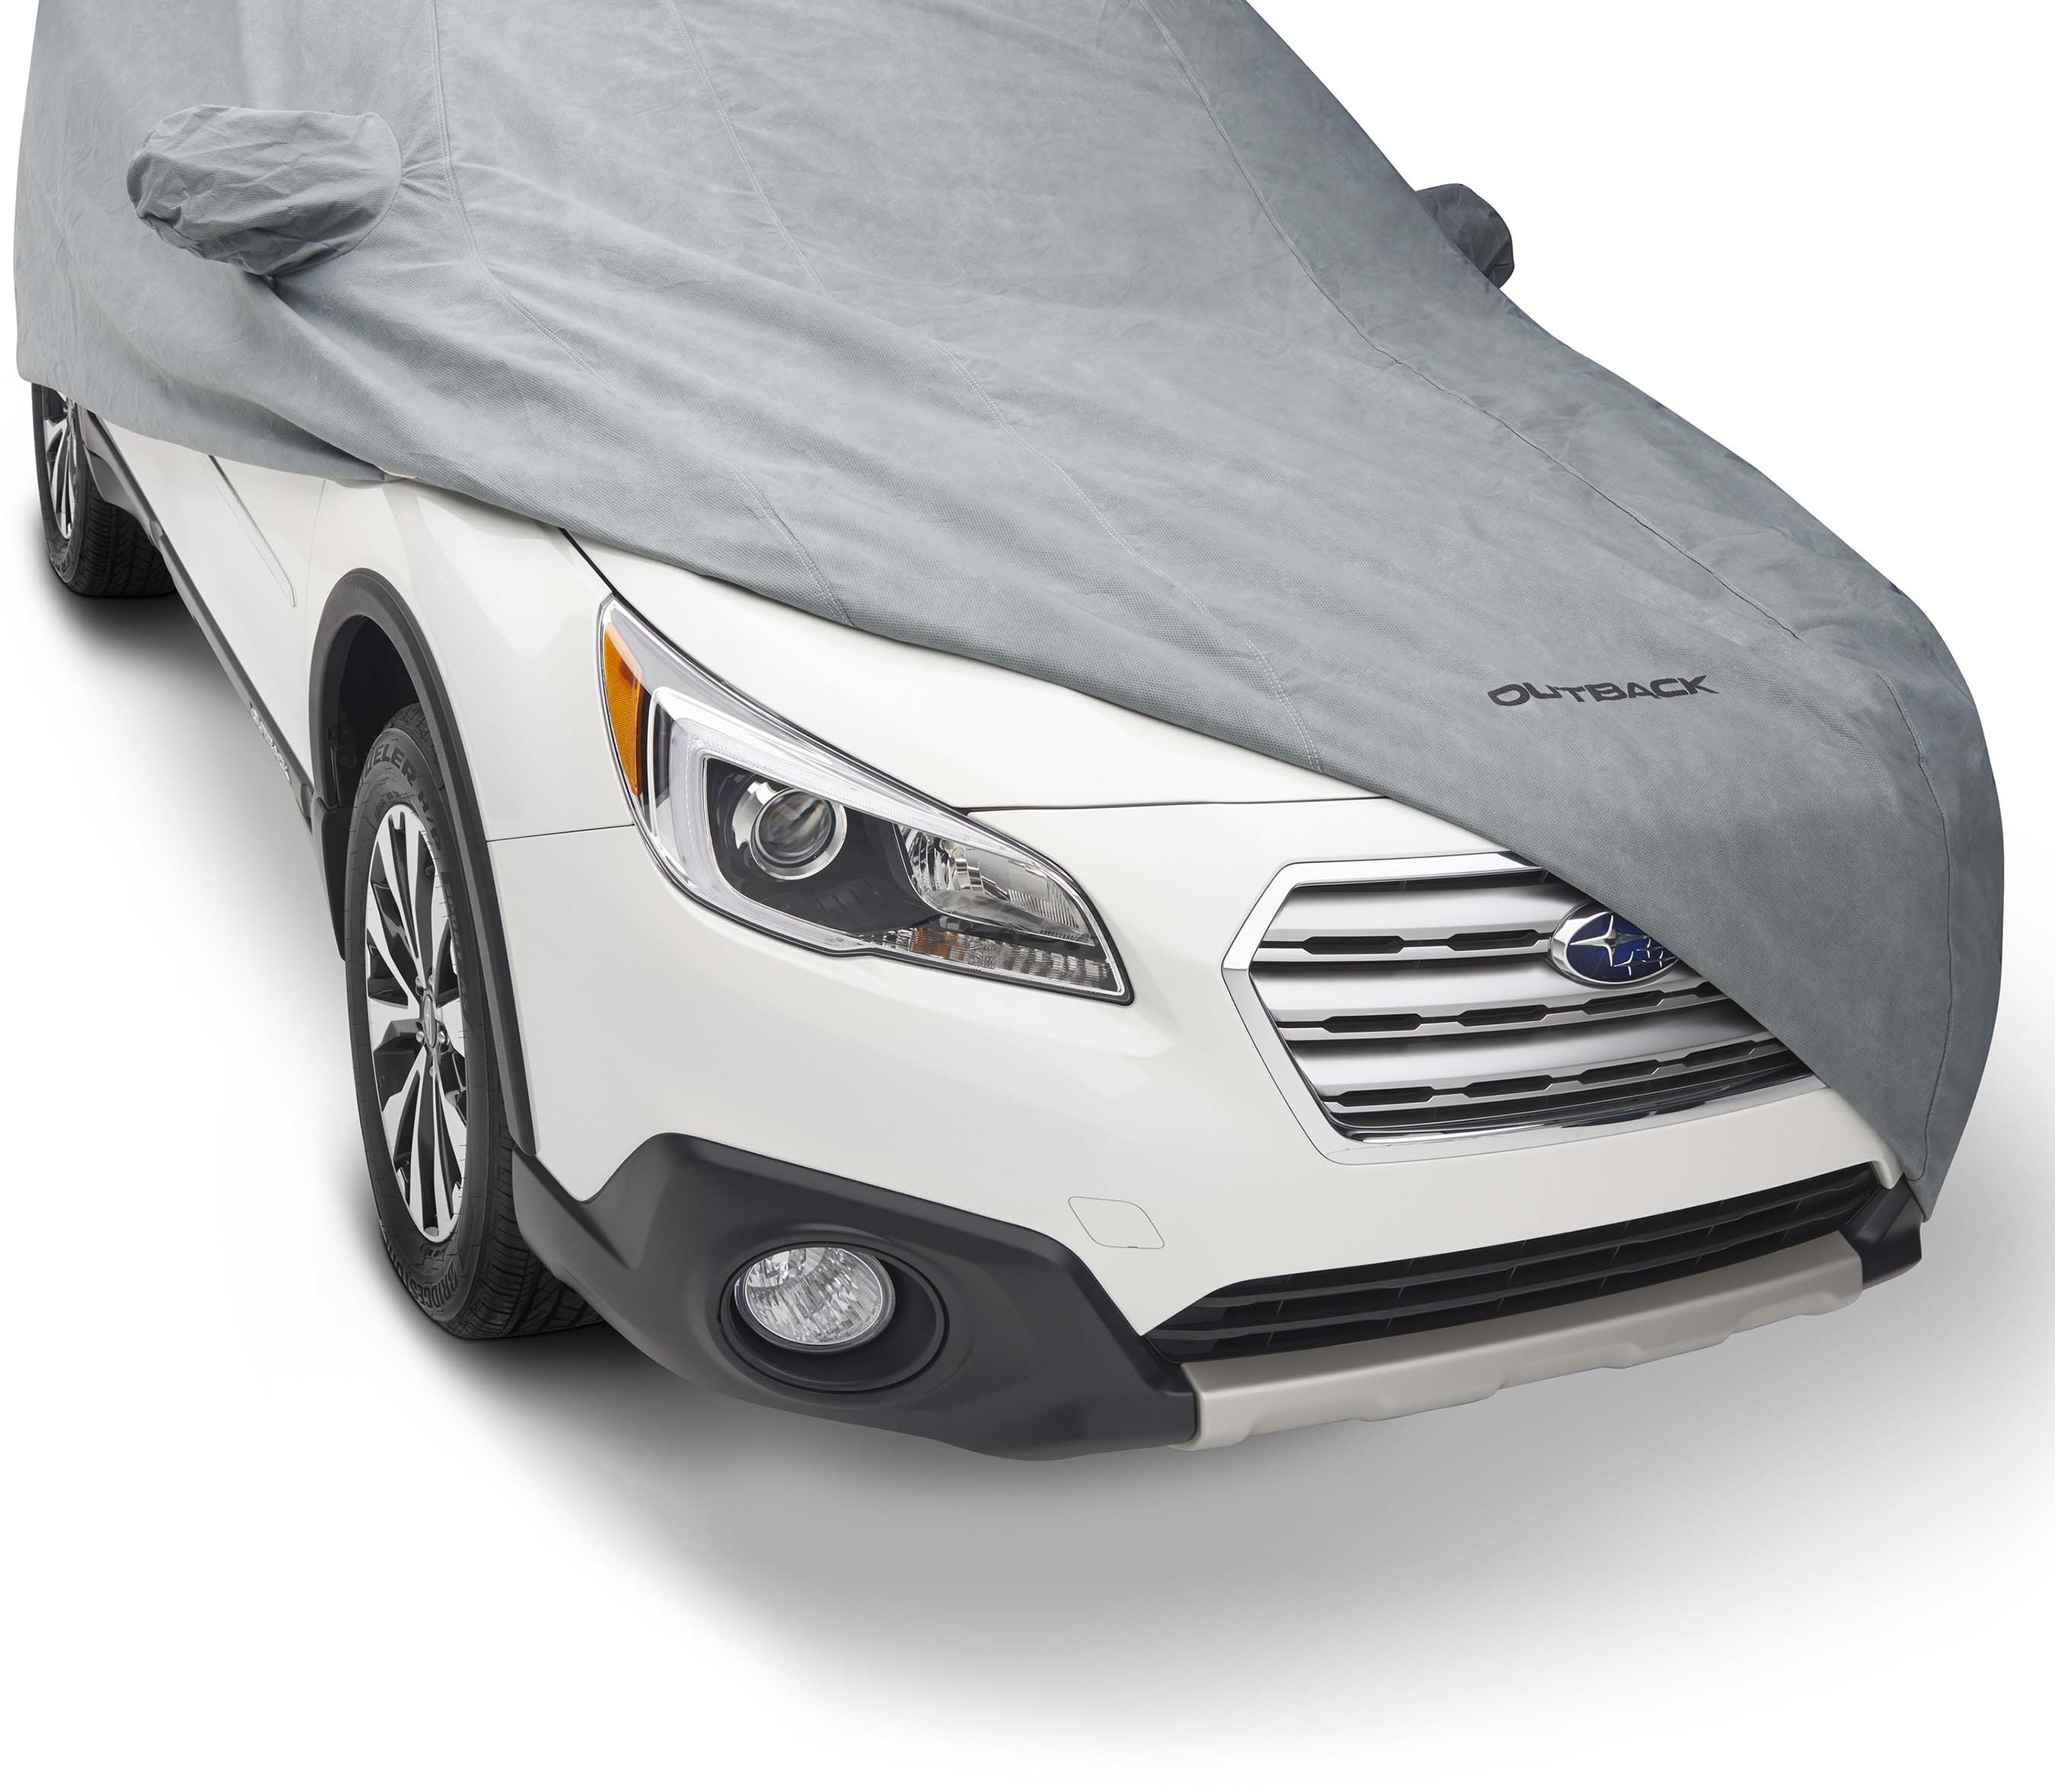 Shop Genuine 2017 Subaru Outback Accessories From